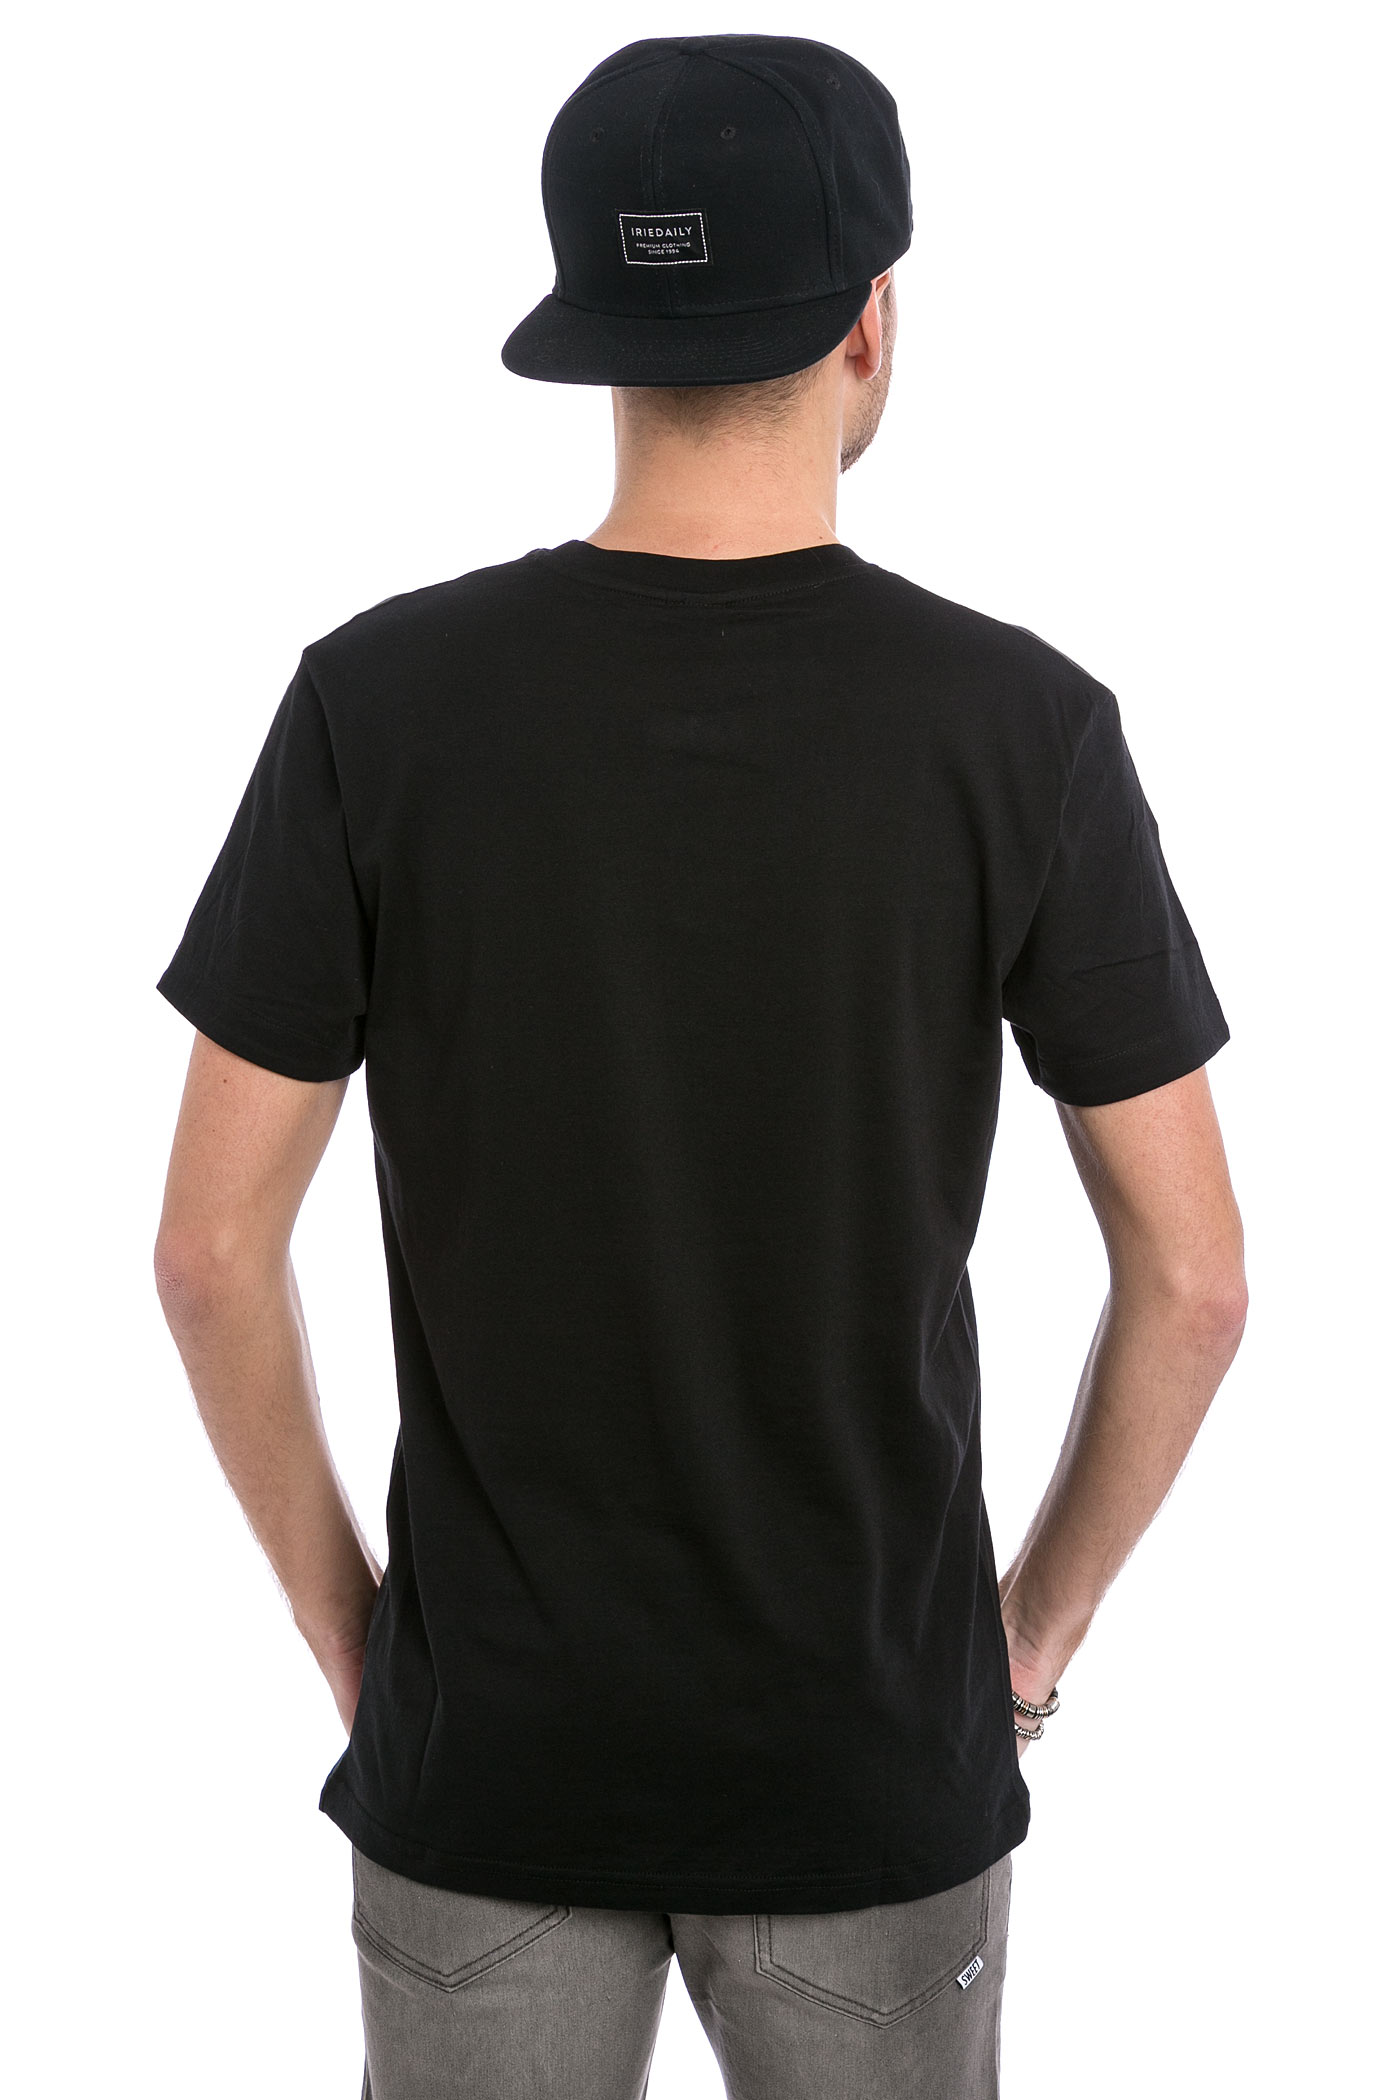 iriedaily turn up t shirt black buy at skatedeluxe. Black Bedroom Furniture Sets. Home Design Ideas